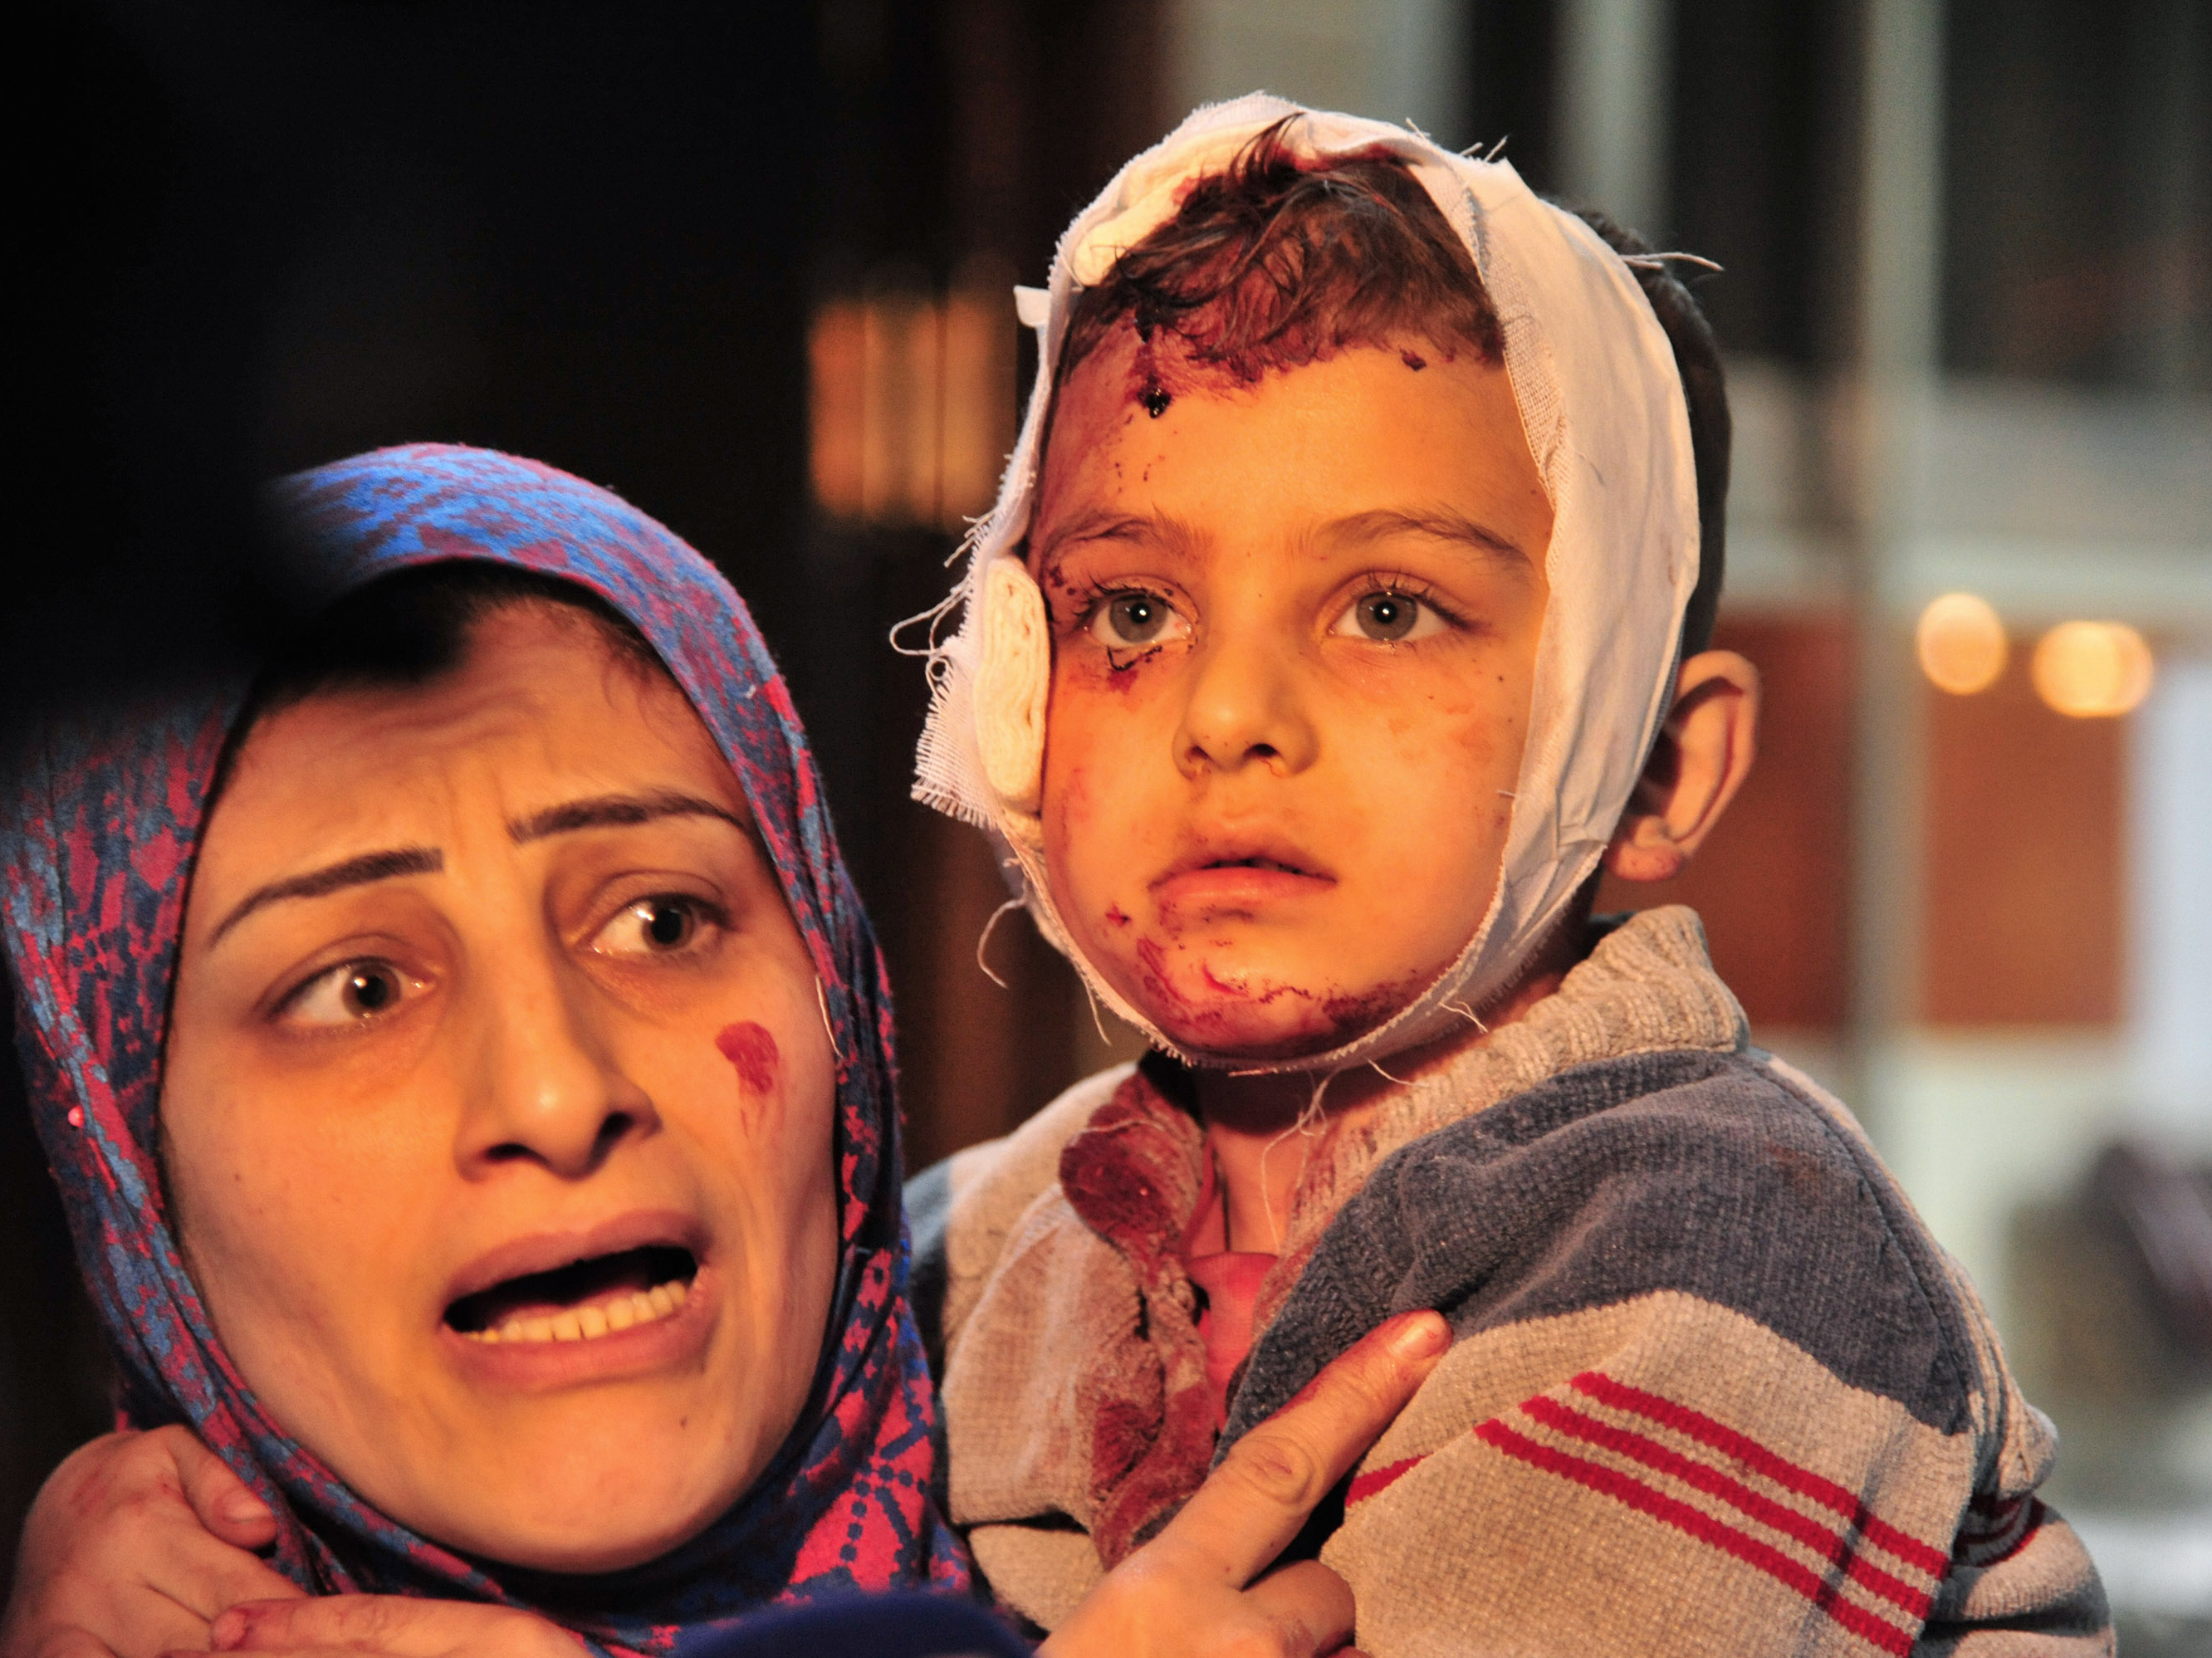 New Report Documents 'Childhood Under Siege' In Syria